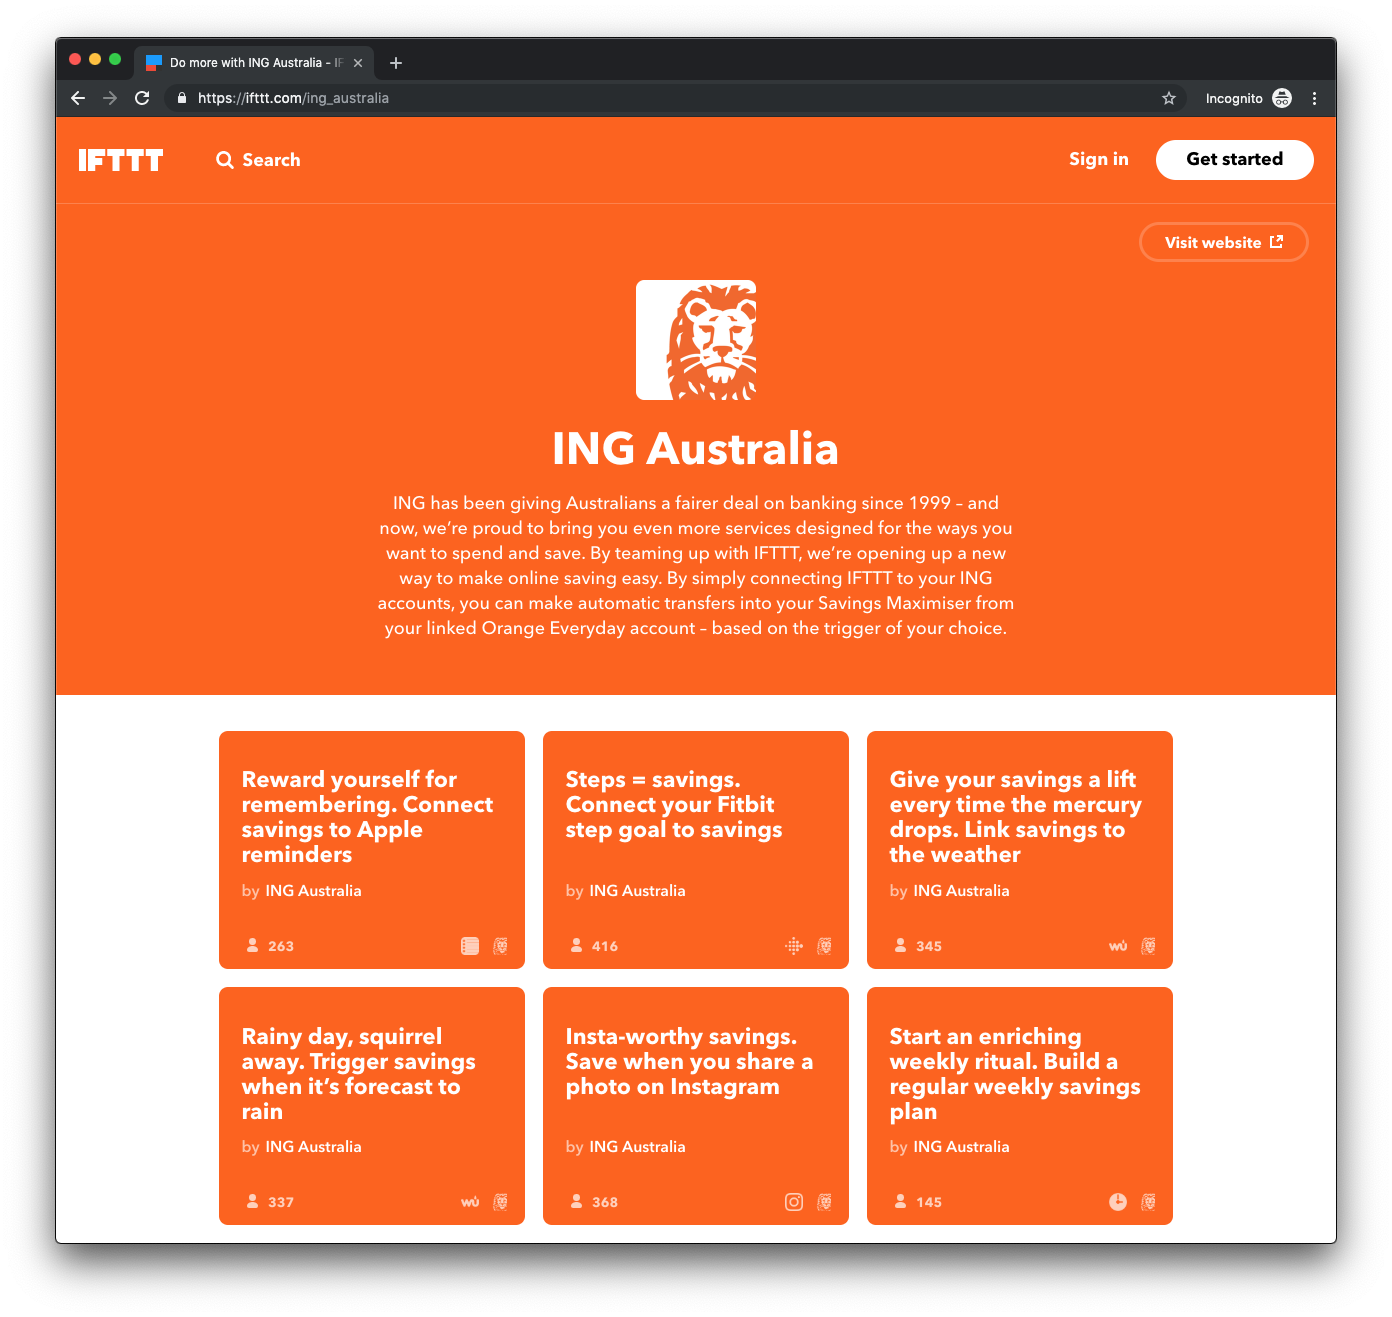 IFTTT Demo - ING Australia on IFTTT